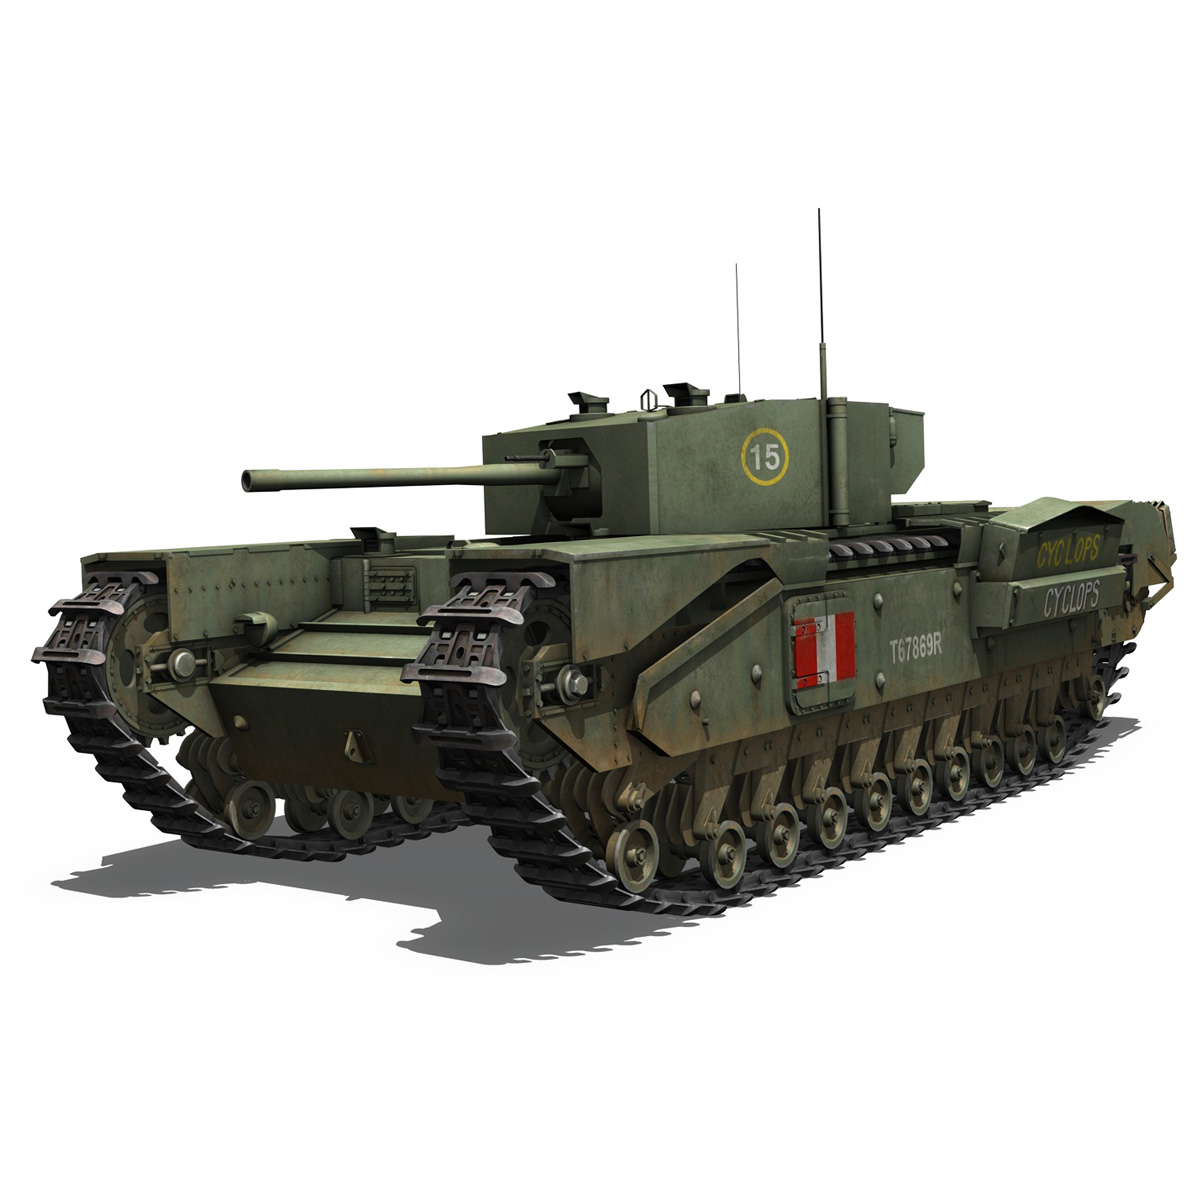 churchill mk.iii - cyclops 3d model 3ds fbx c4d lwo obj 270898